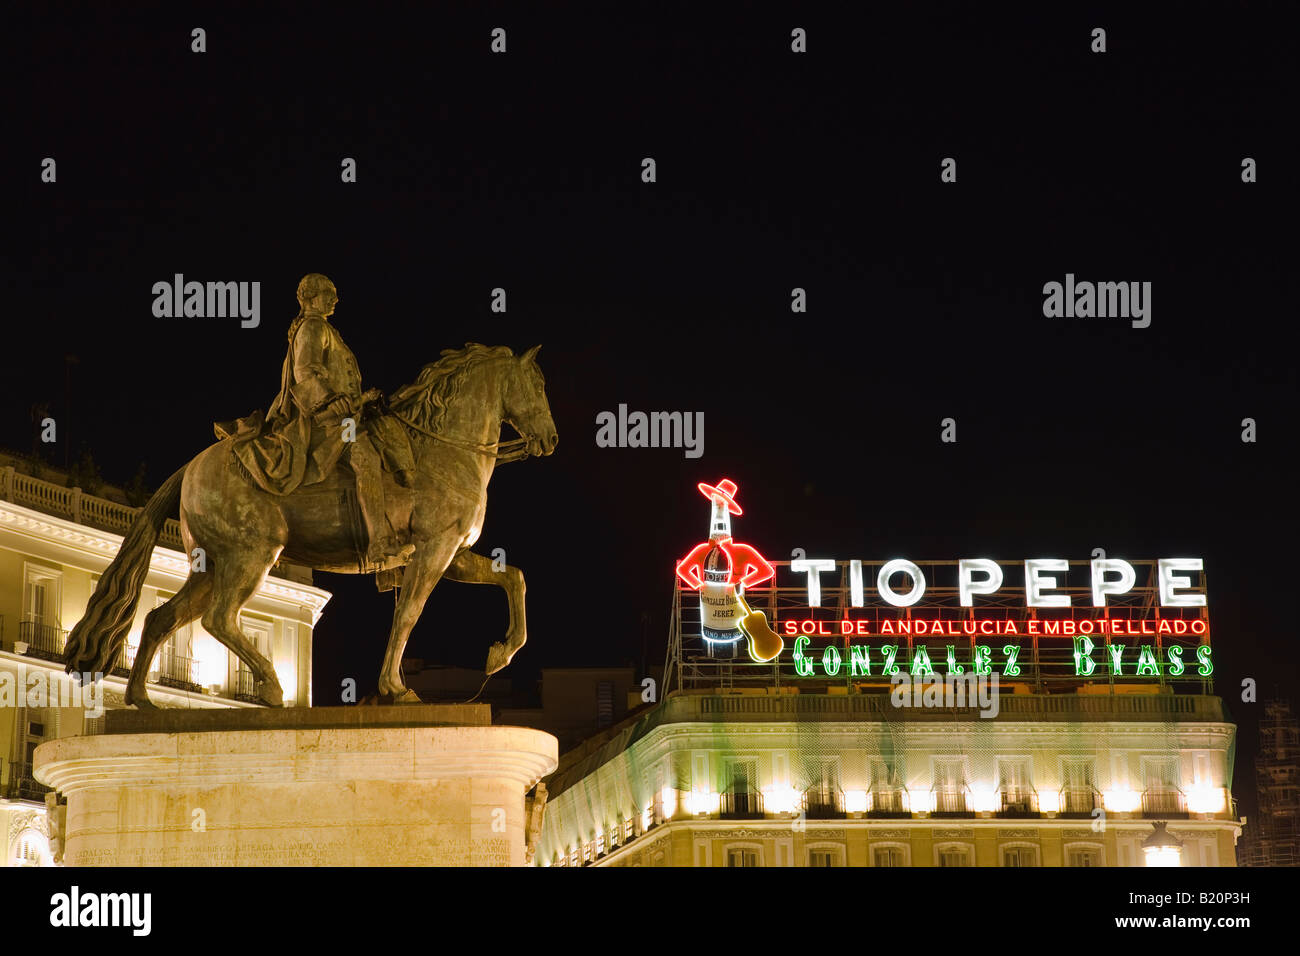 SPAIN Madrid Statue of Mounted King Charles III in Puerto del Sol plaza with Tio Pepe neon sign at night Stock Photo